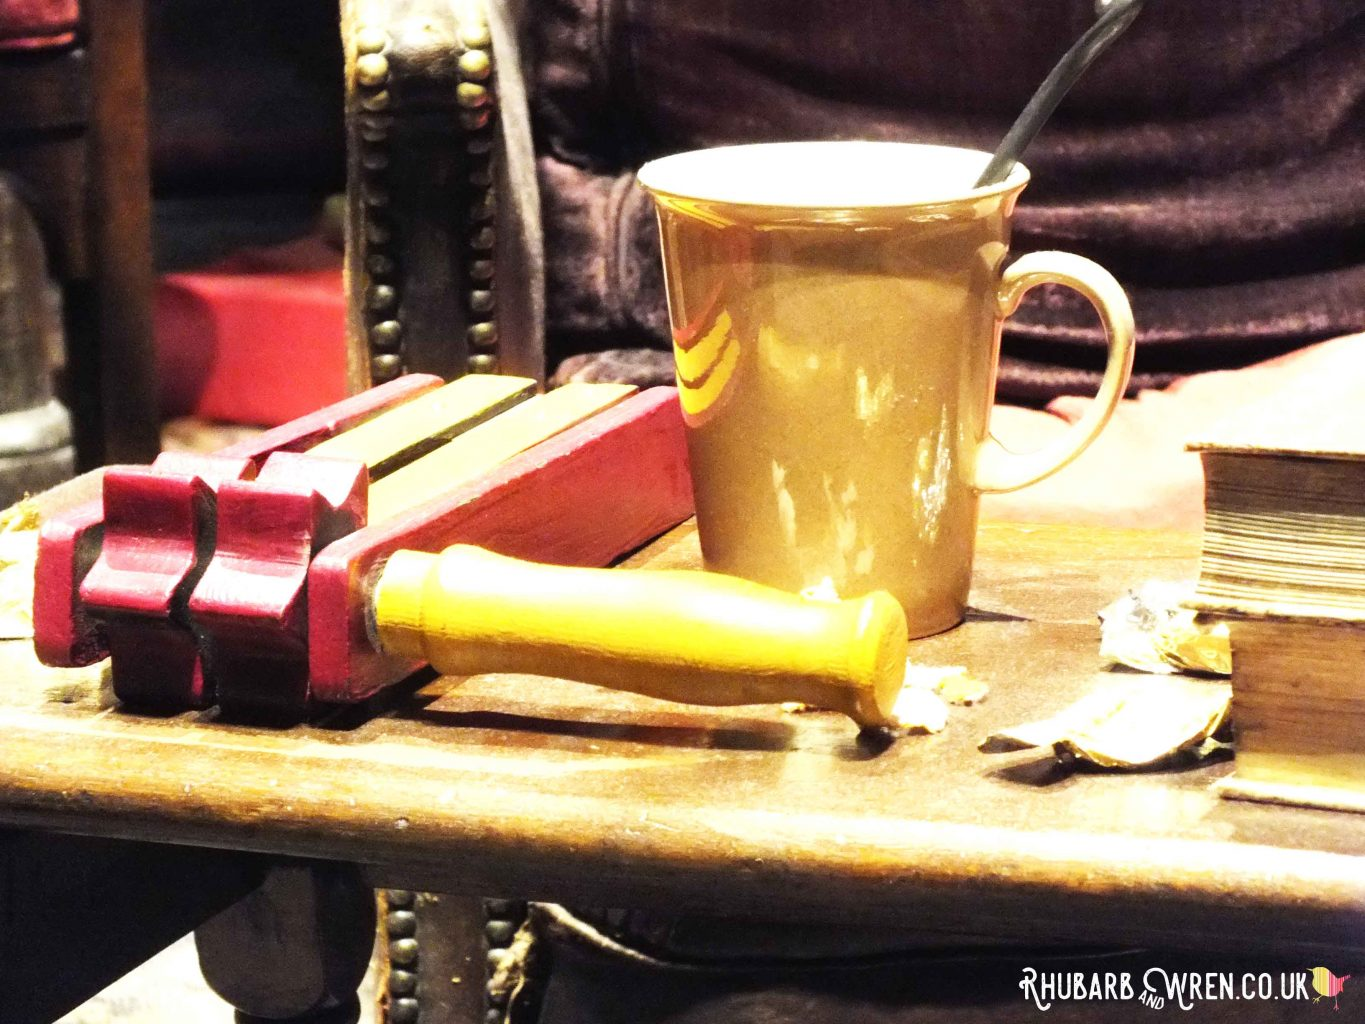 Gryffindor common room set at the Harry Potter studio tour, UK